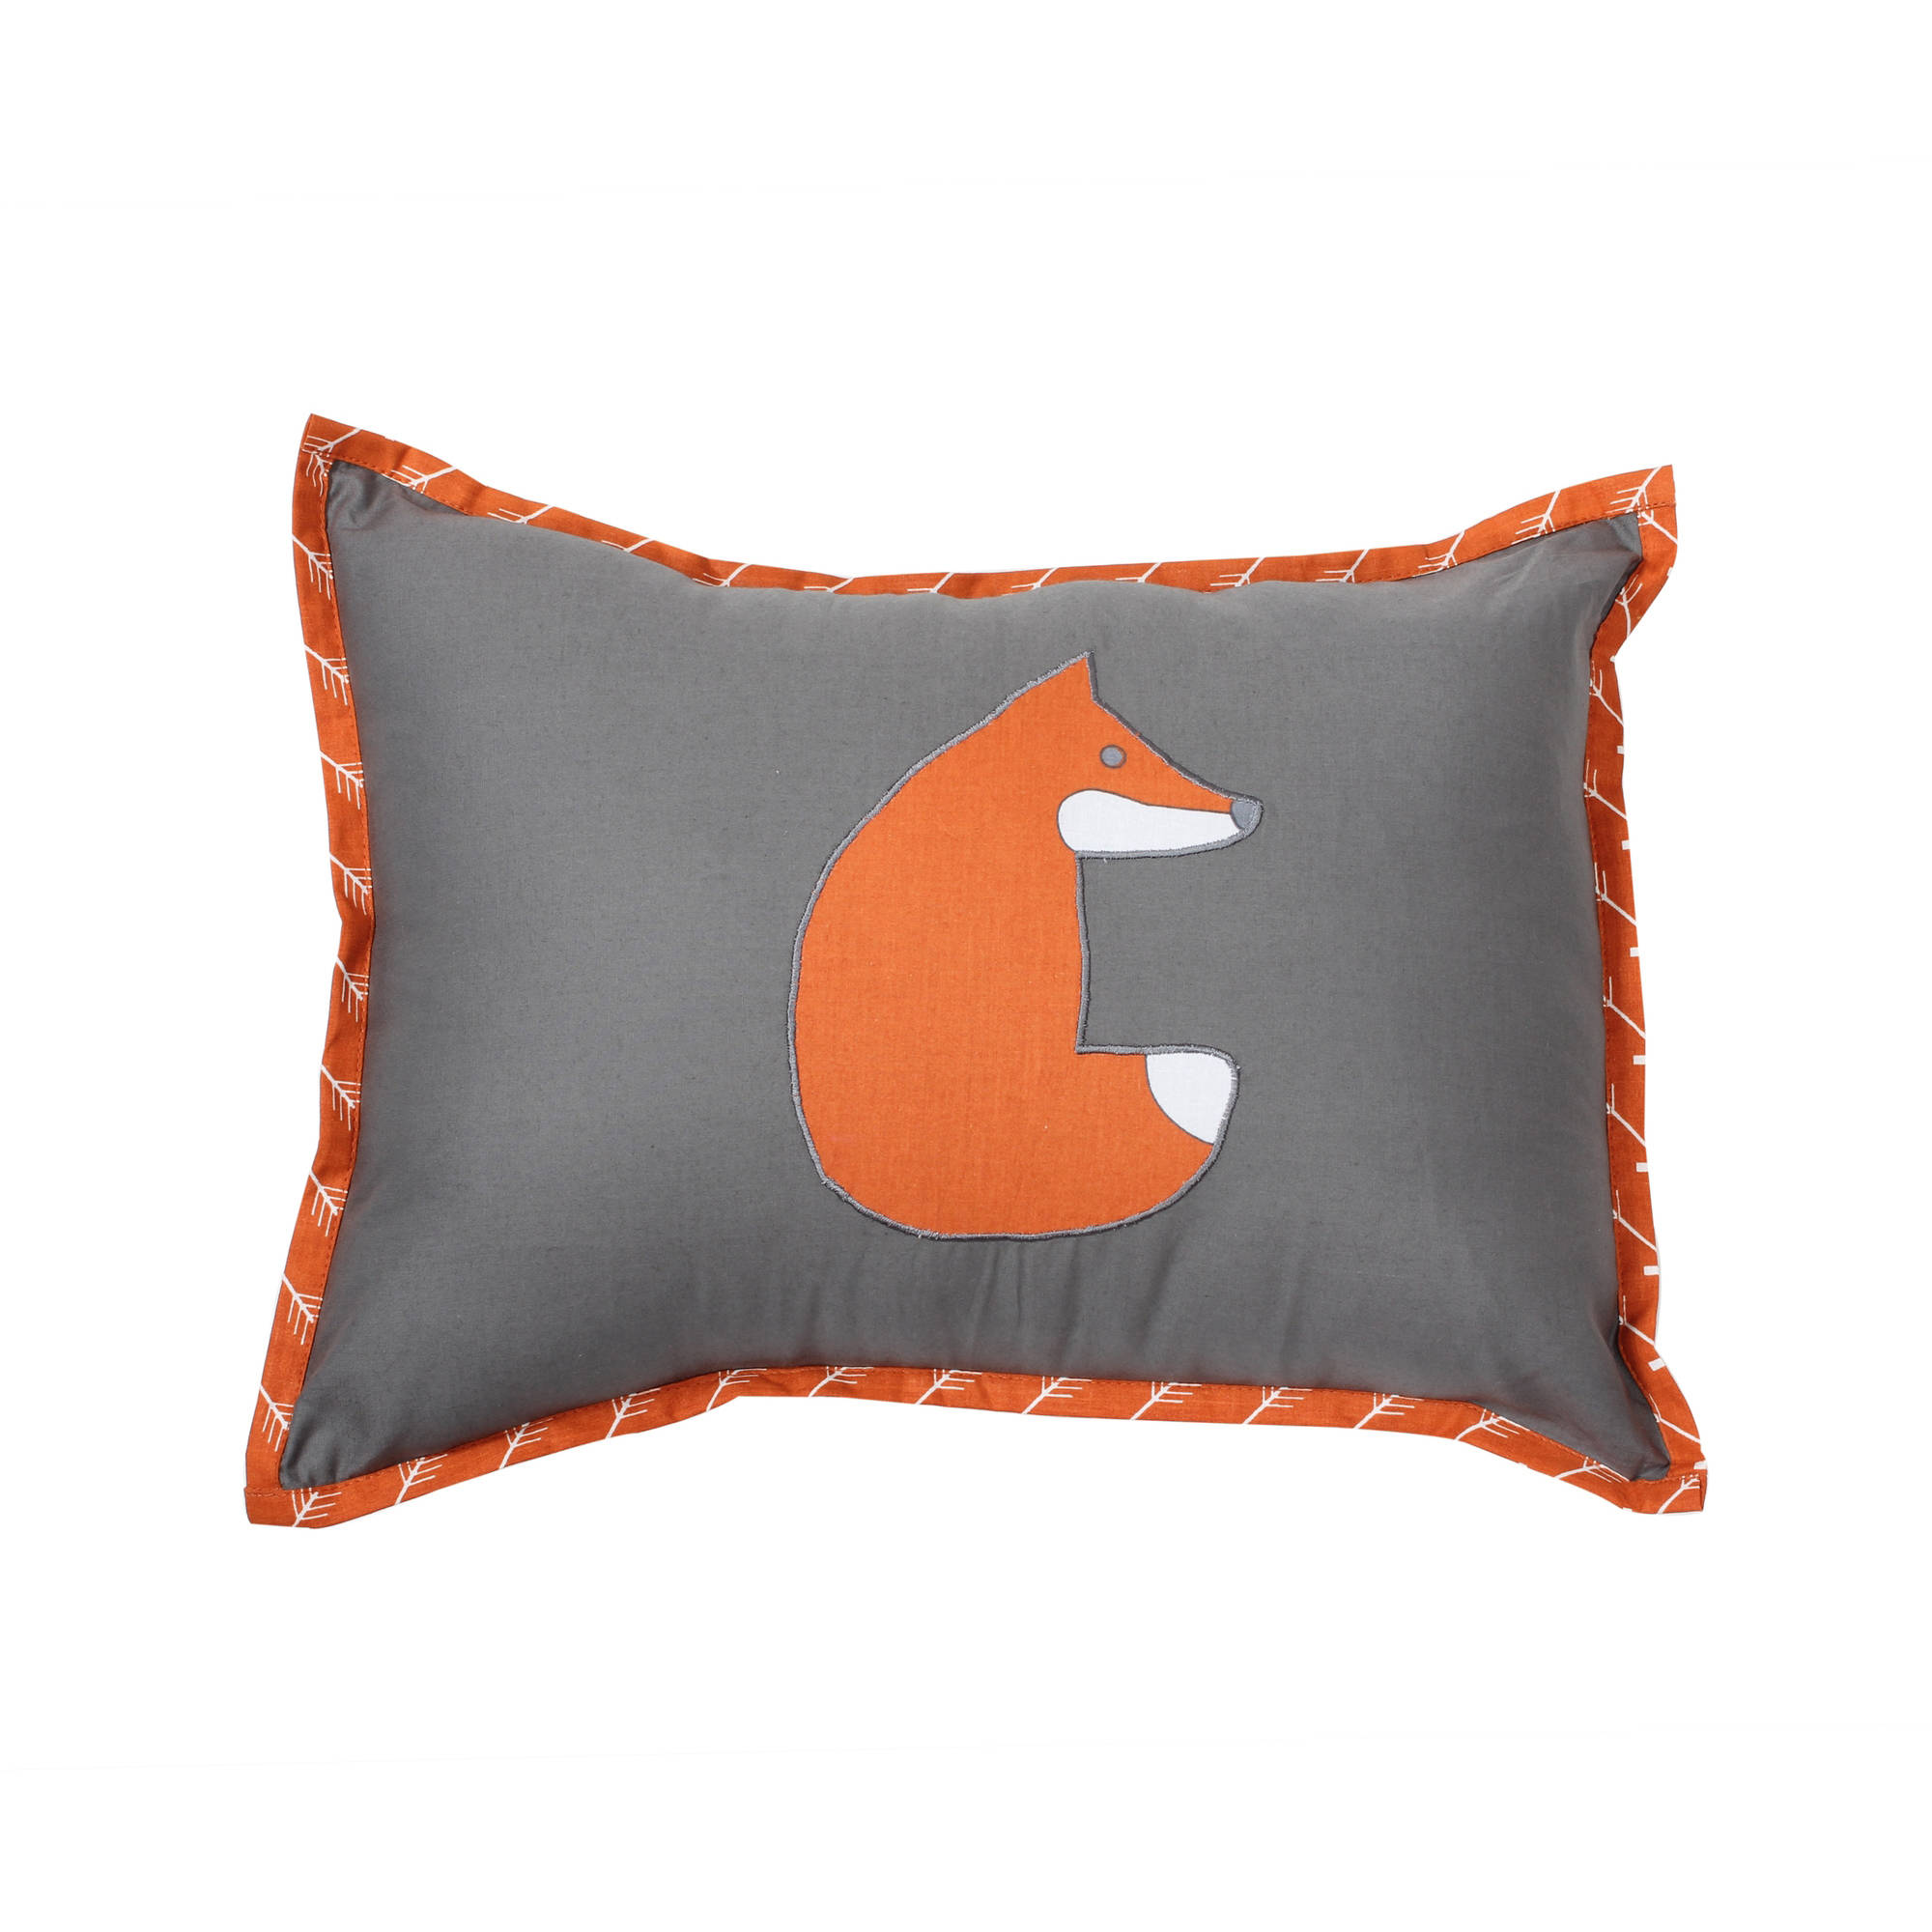 Bacati Playful Fox Orange Grey Dec Pillow 12 x 16 inches with removable 100% Cotton cover... by Bacati